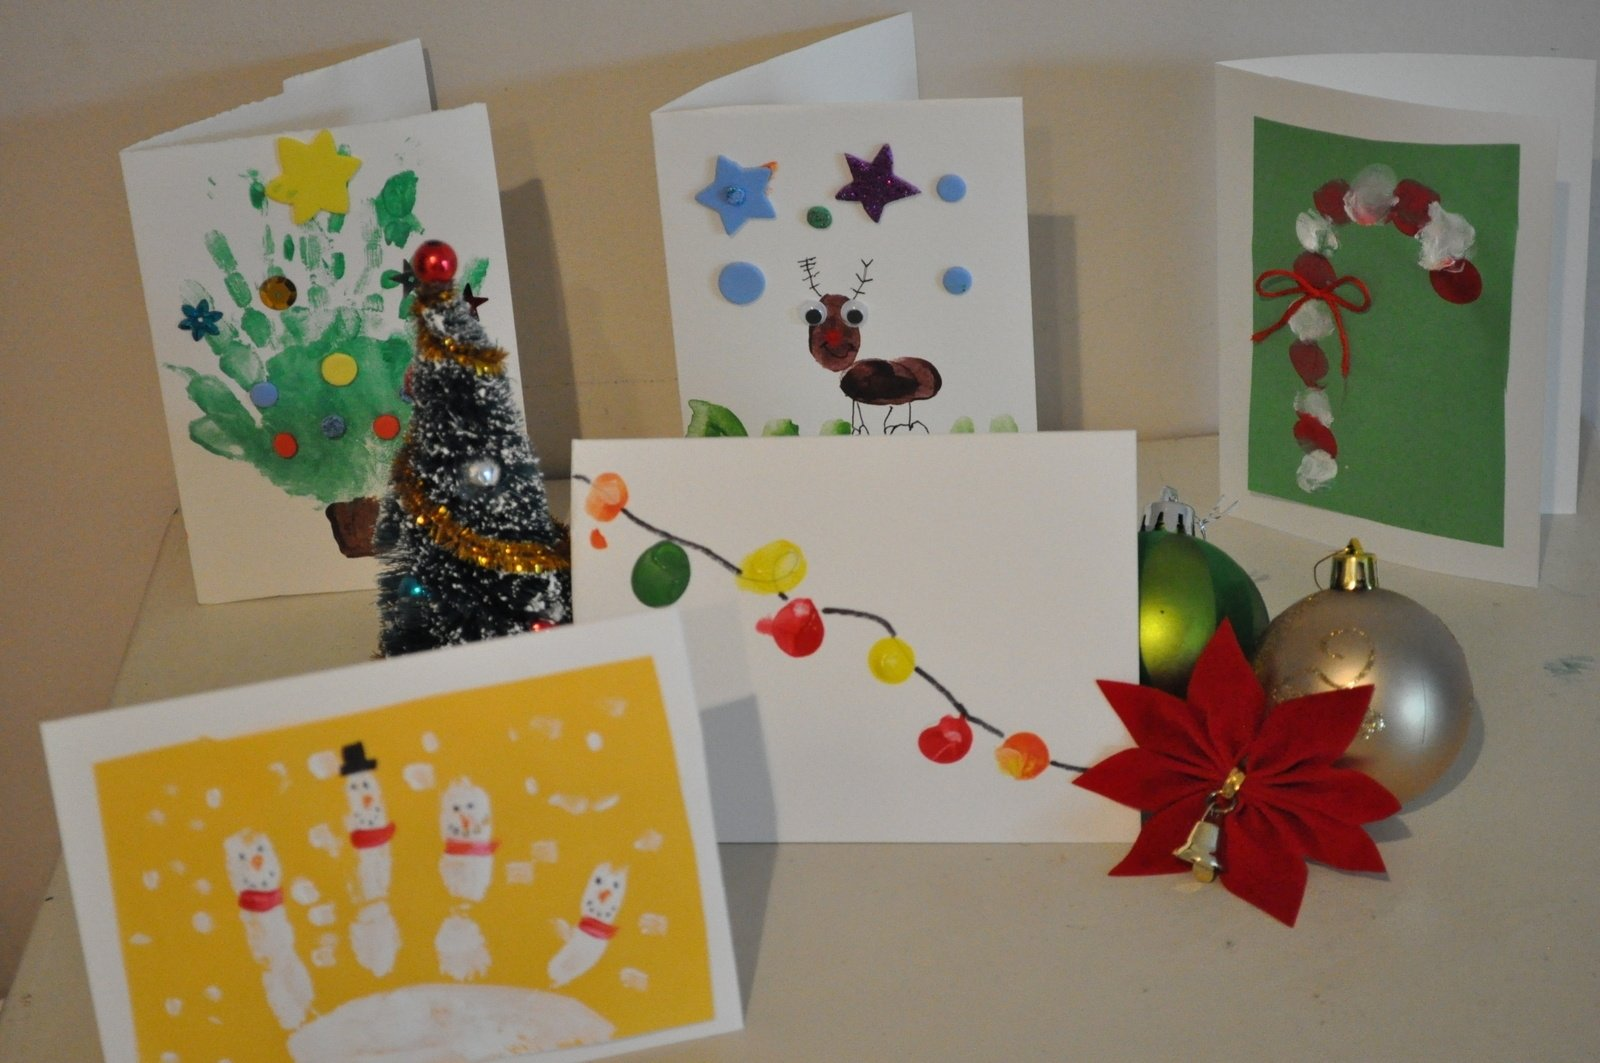 10 Most Popular Christmas Card Ideas With Kids homemade christmas card ideas to do with kids e280a2 brisbane kids 2 2020